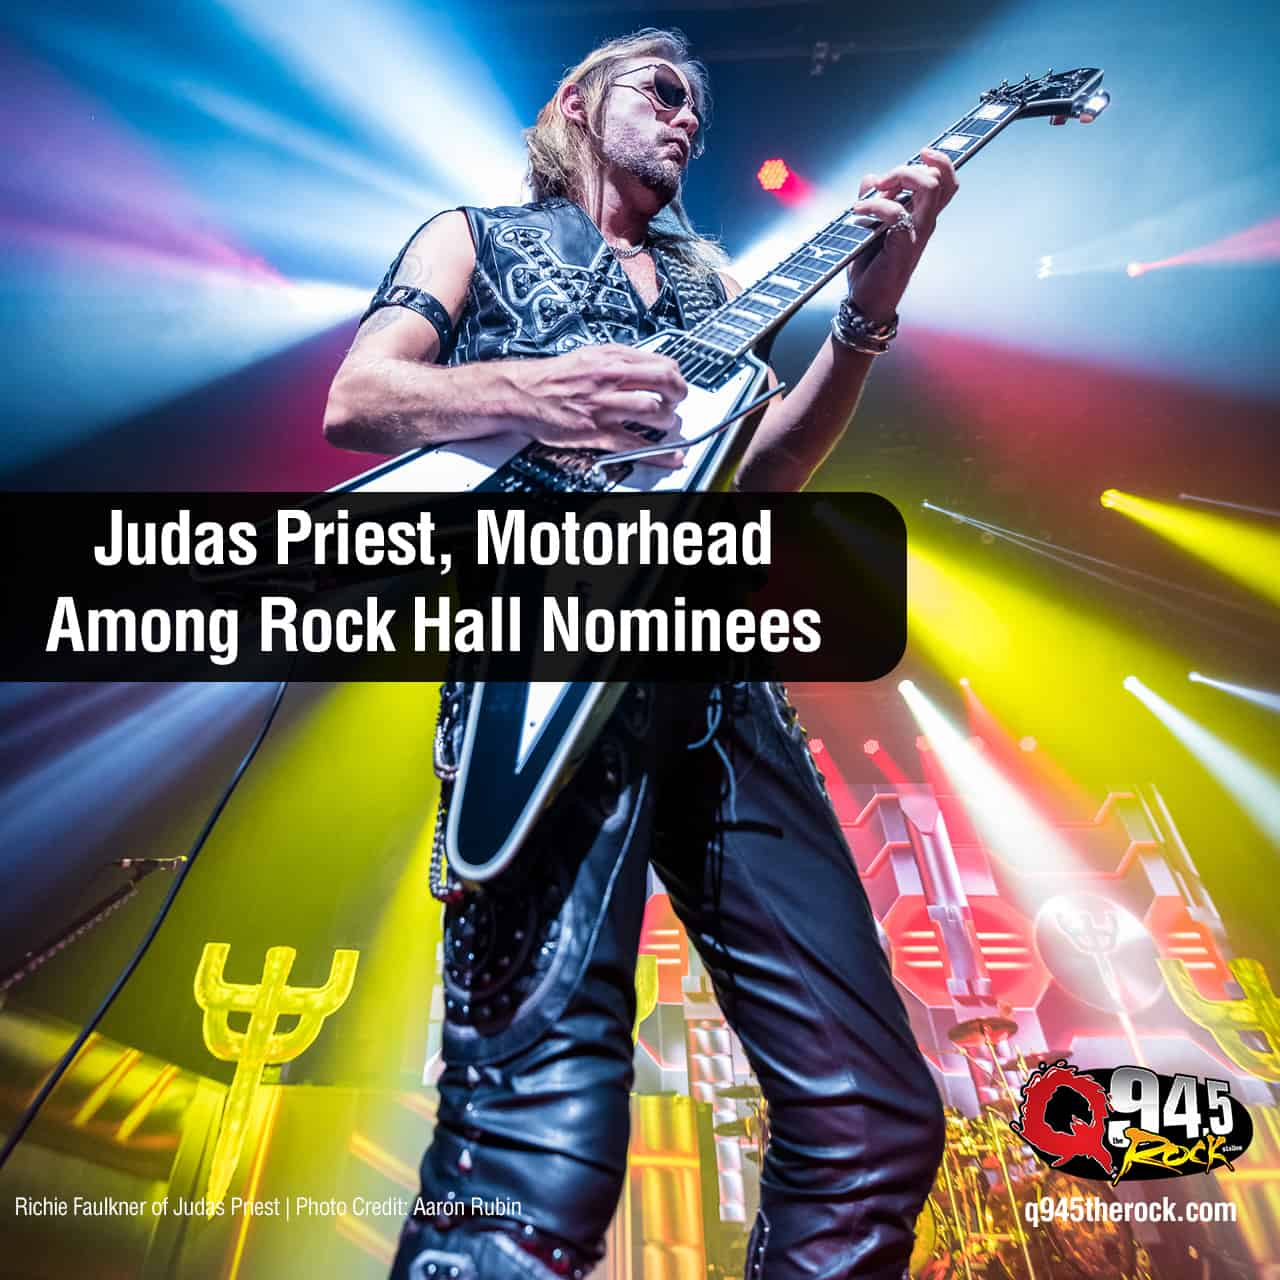 Judas Priest, Motorhead Among Rock Hall Nominees